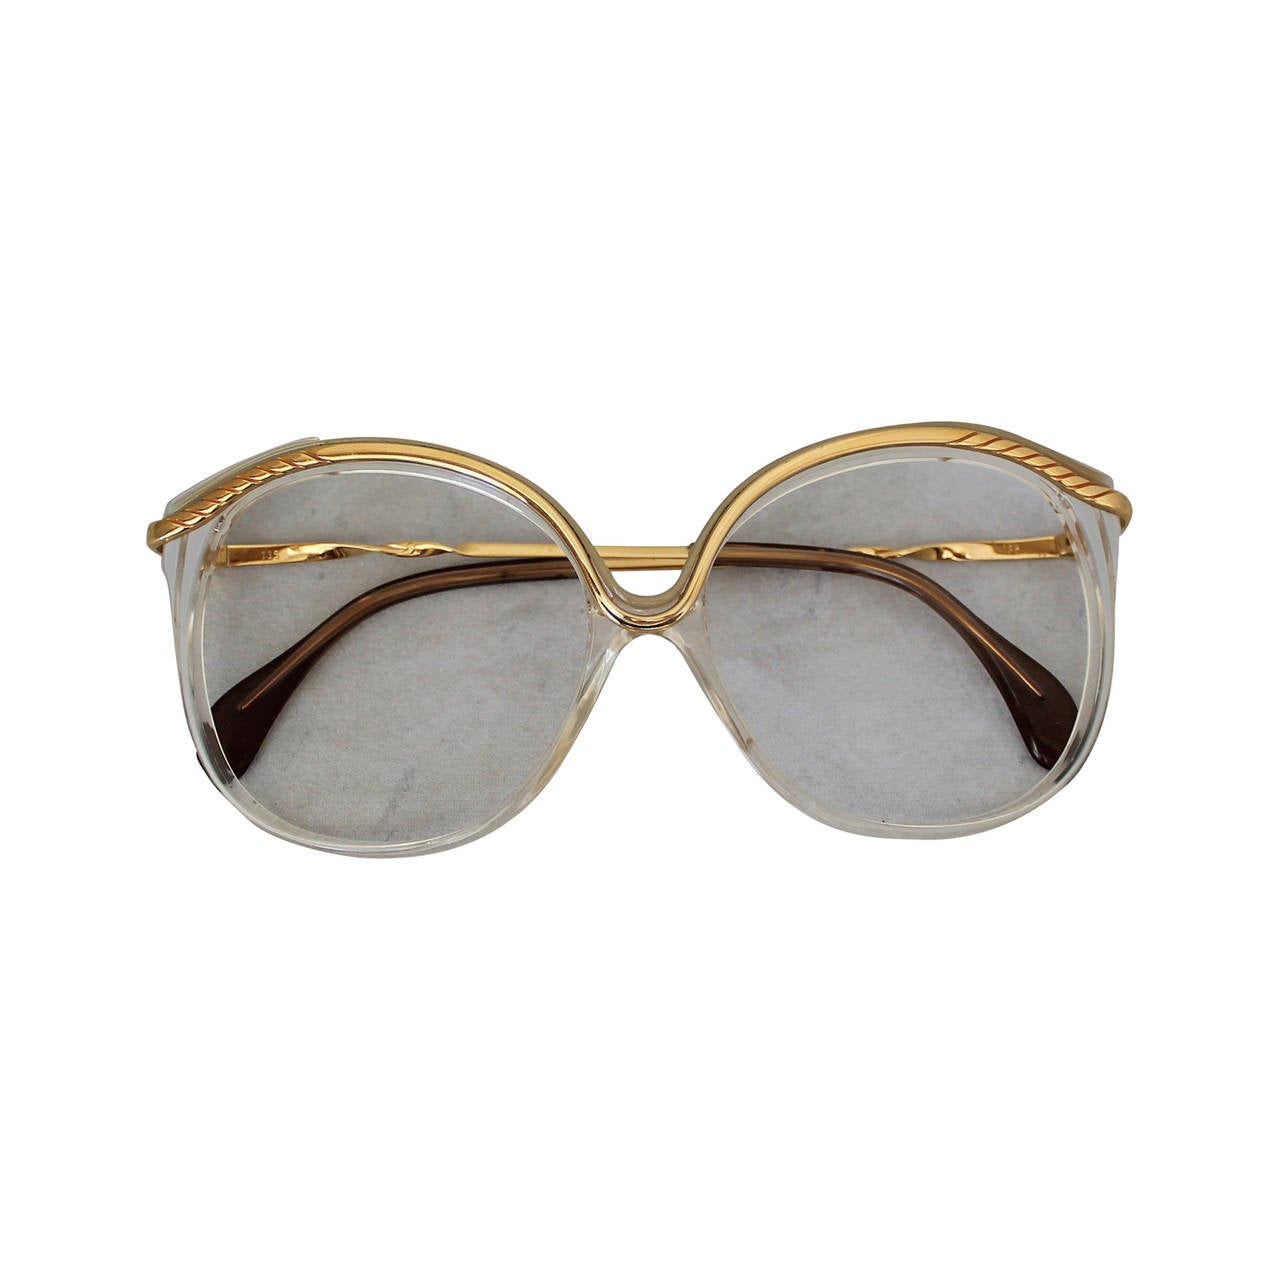 Vintage 1970s Gemini Gold Tone Frames For Sale